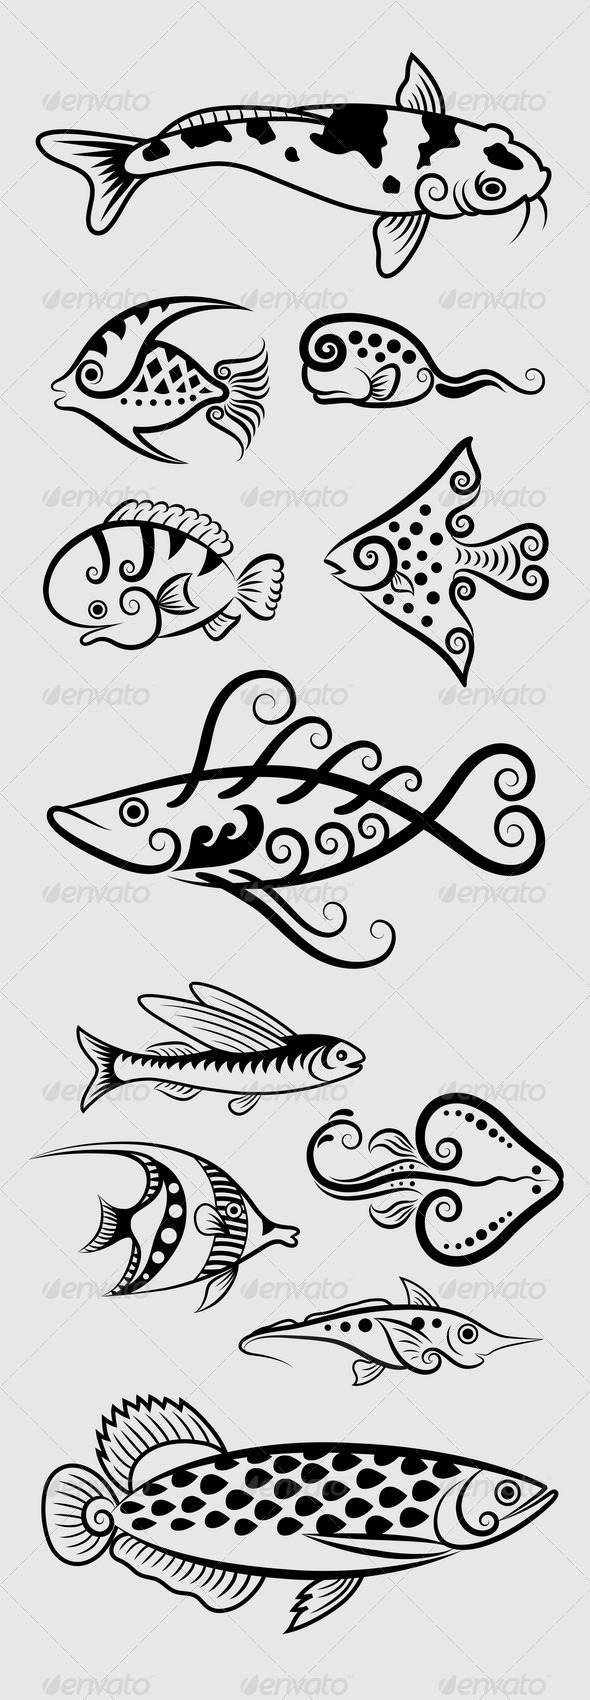 Decorative Fish Symbols